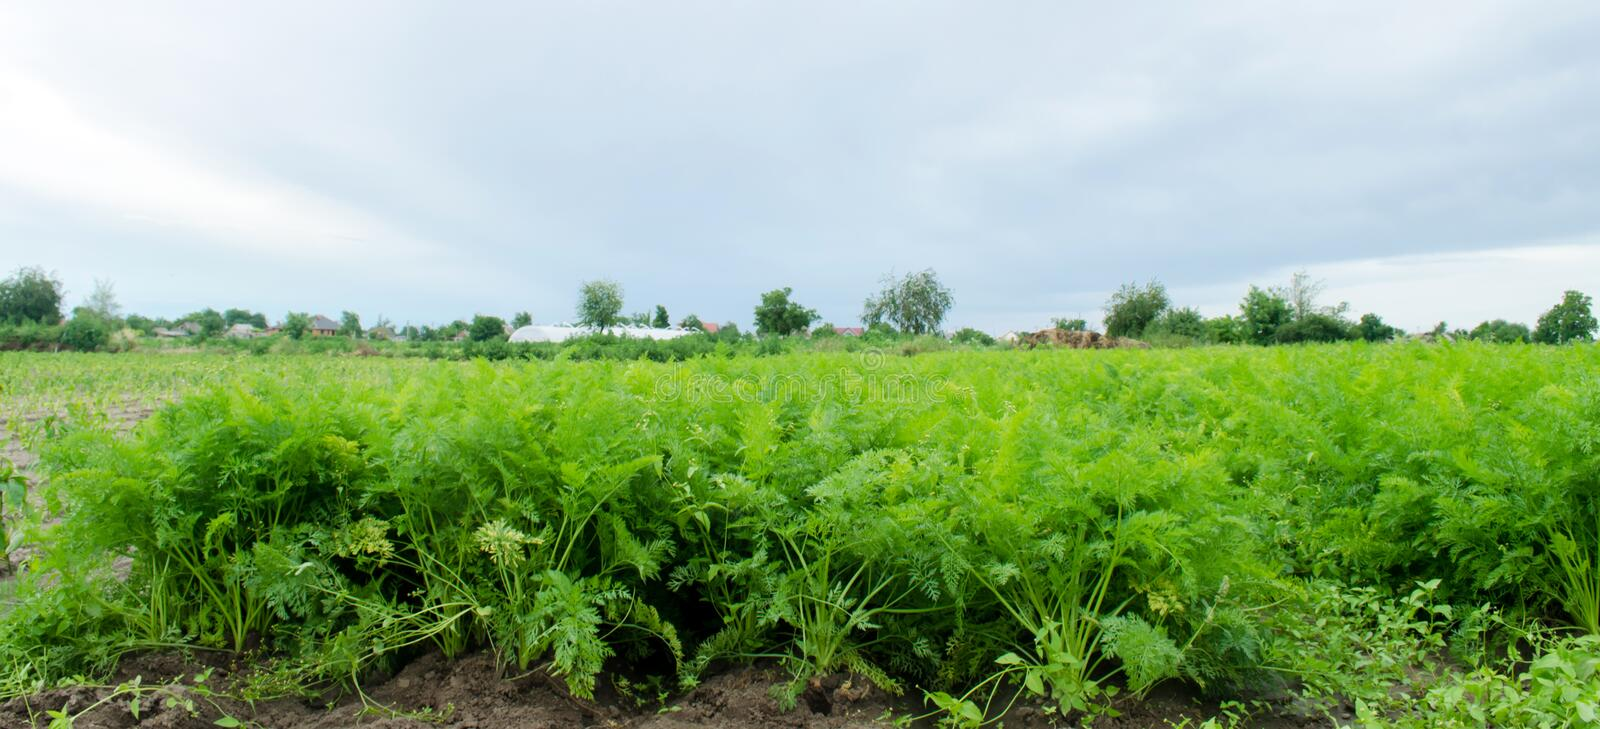 Carrot plantations are grown in the field. Vegetable rows. Organic vegetables. Landscape agriculture. Farming Farm. Eco friendly. Products. Selective focus stock photography